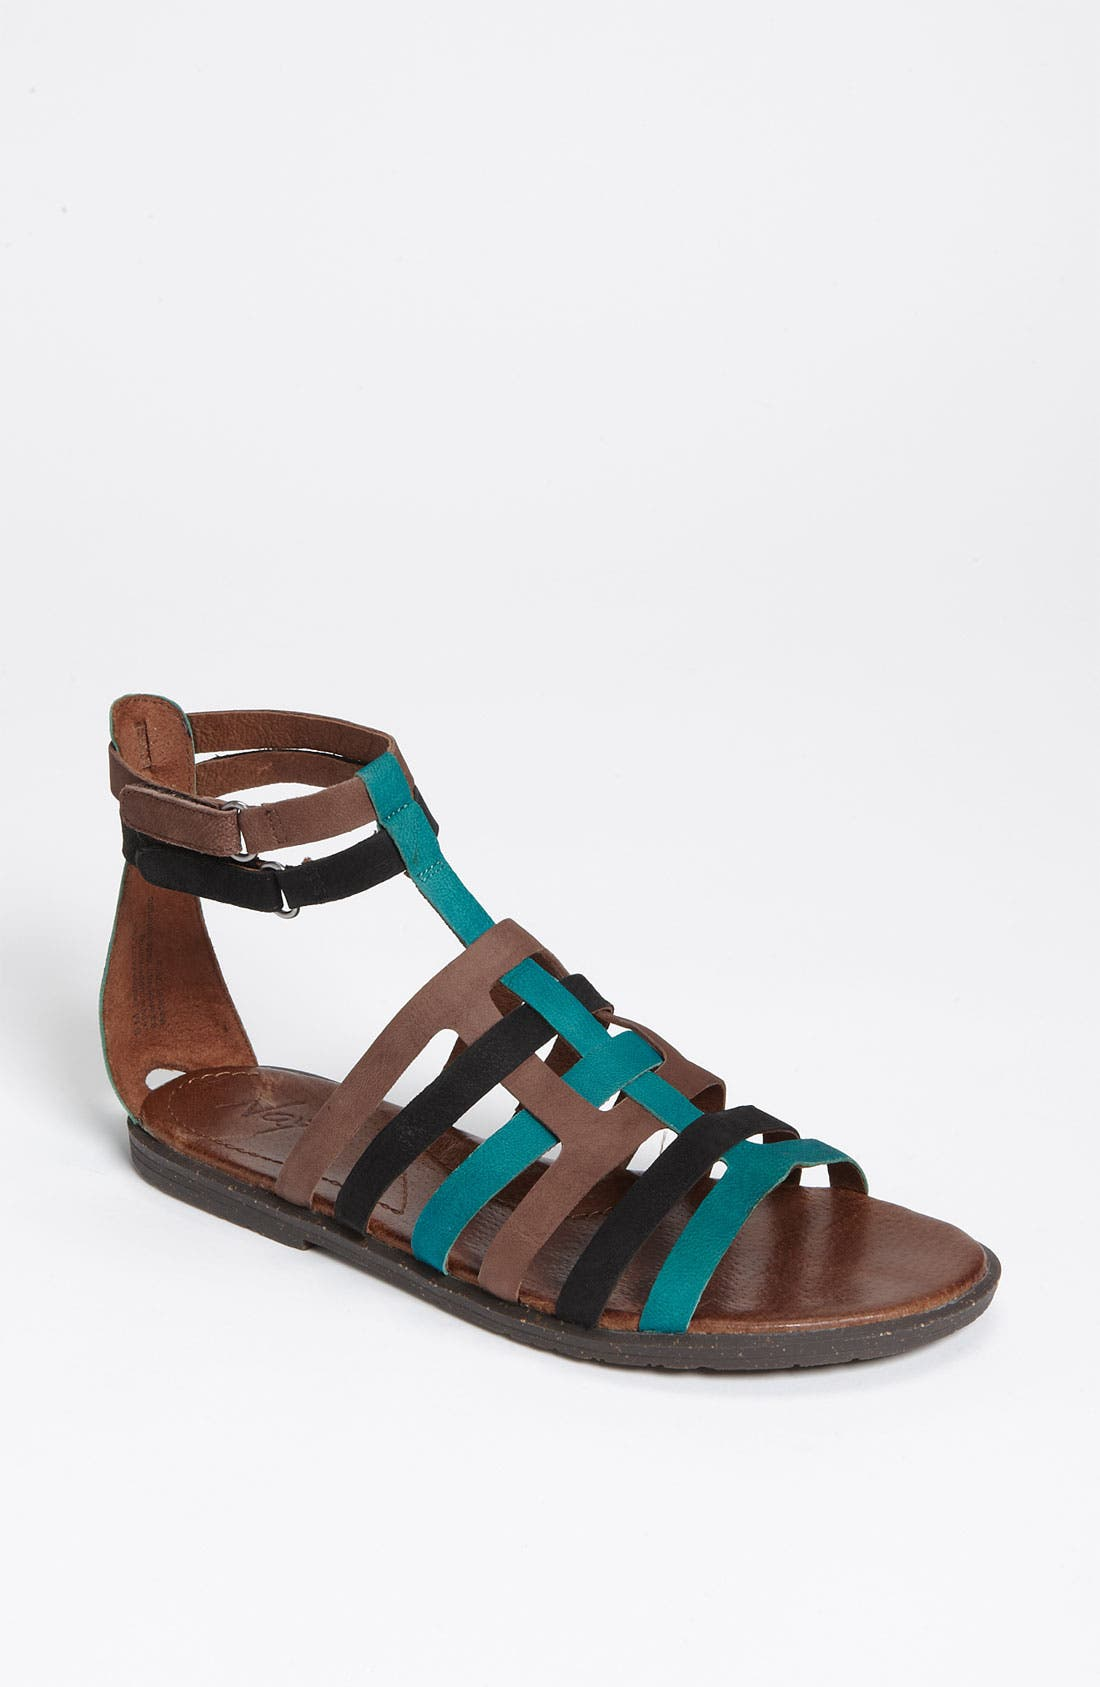 Alternate Image 1 Selected - Naya 'Zamira' Sandal